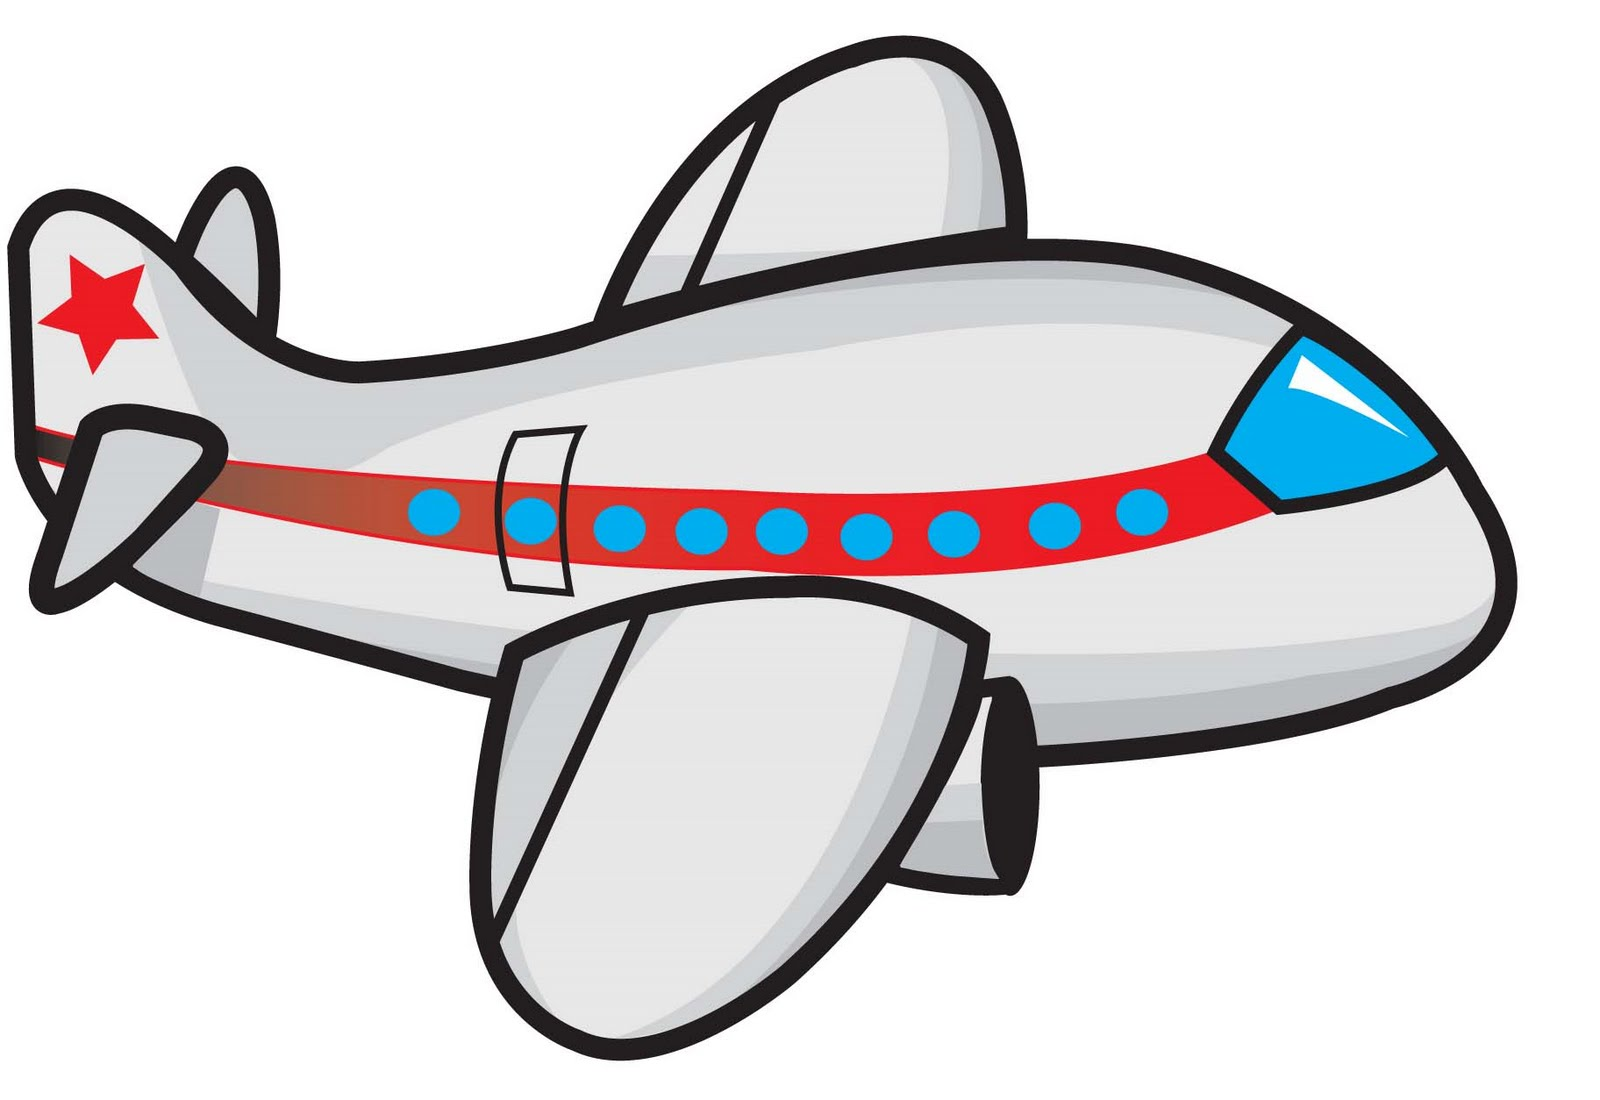 Plane clipart. Cartoon